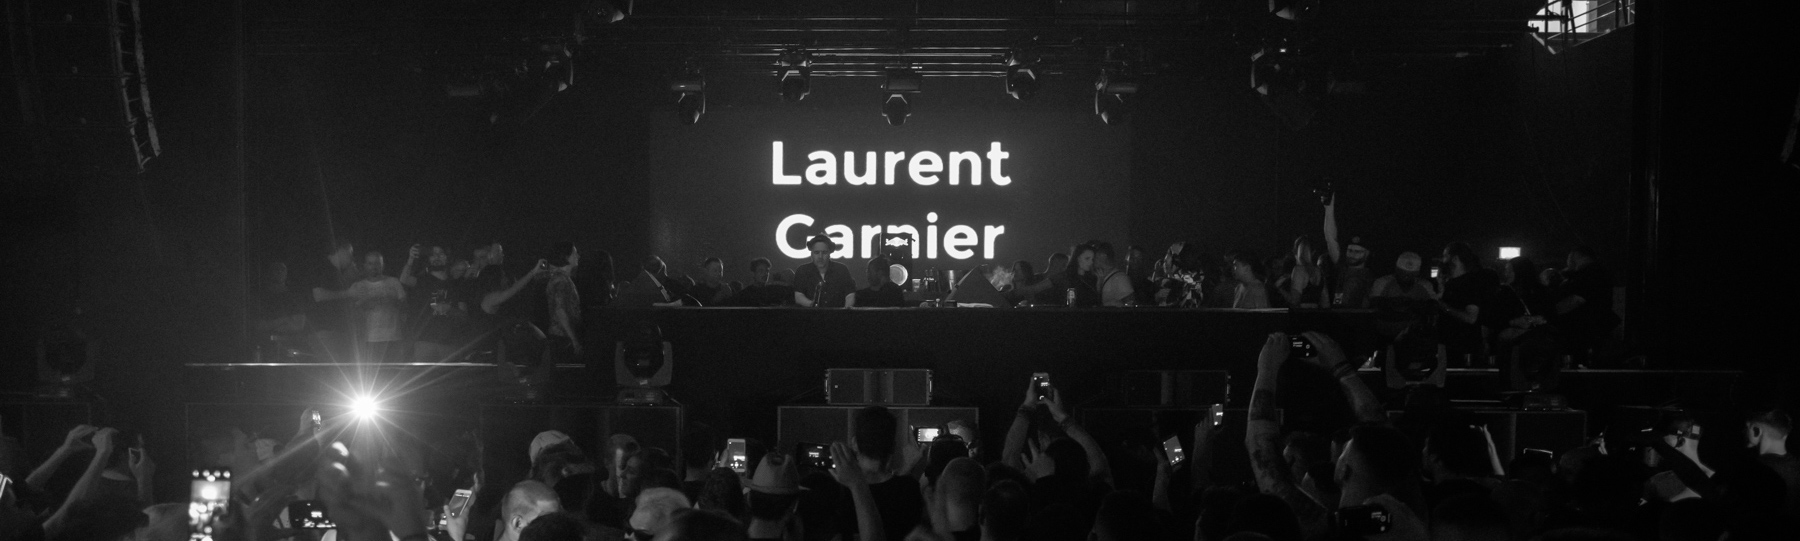 laurent garnier time warp